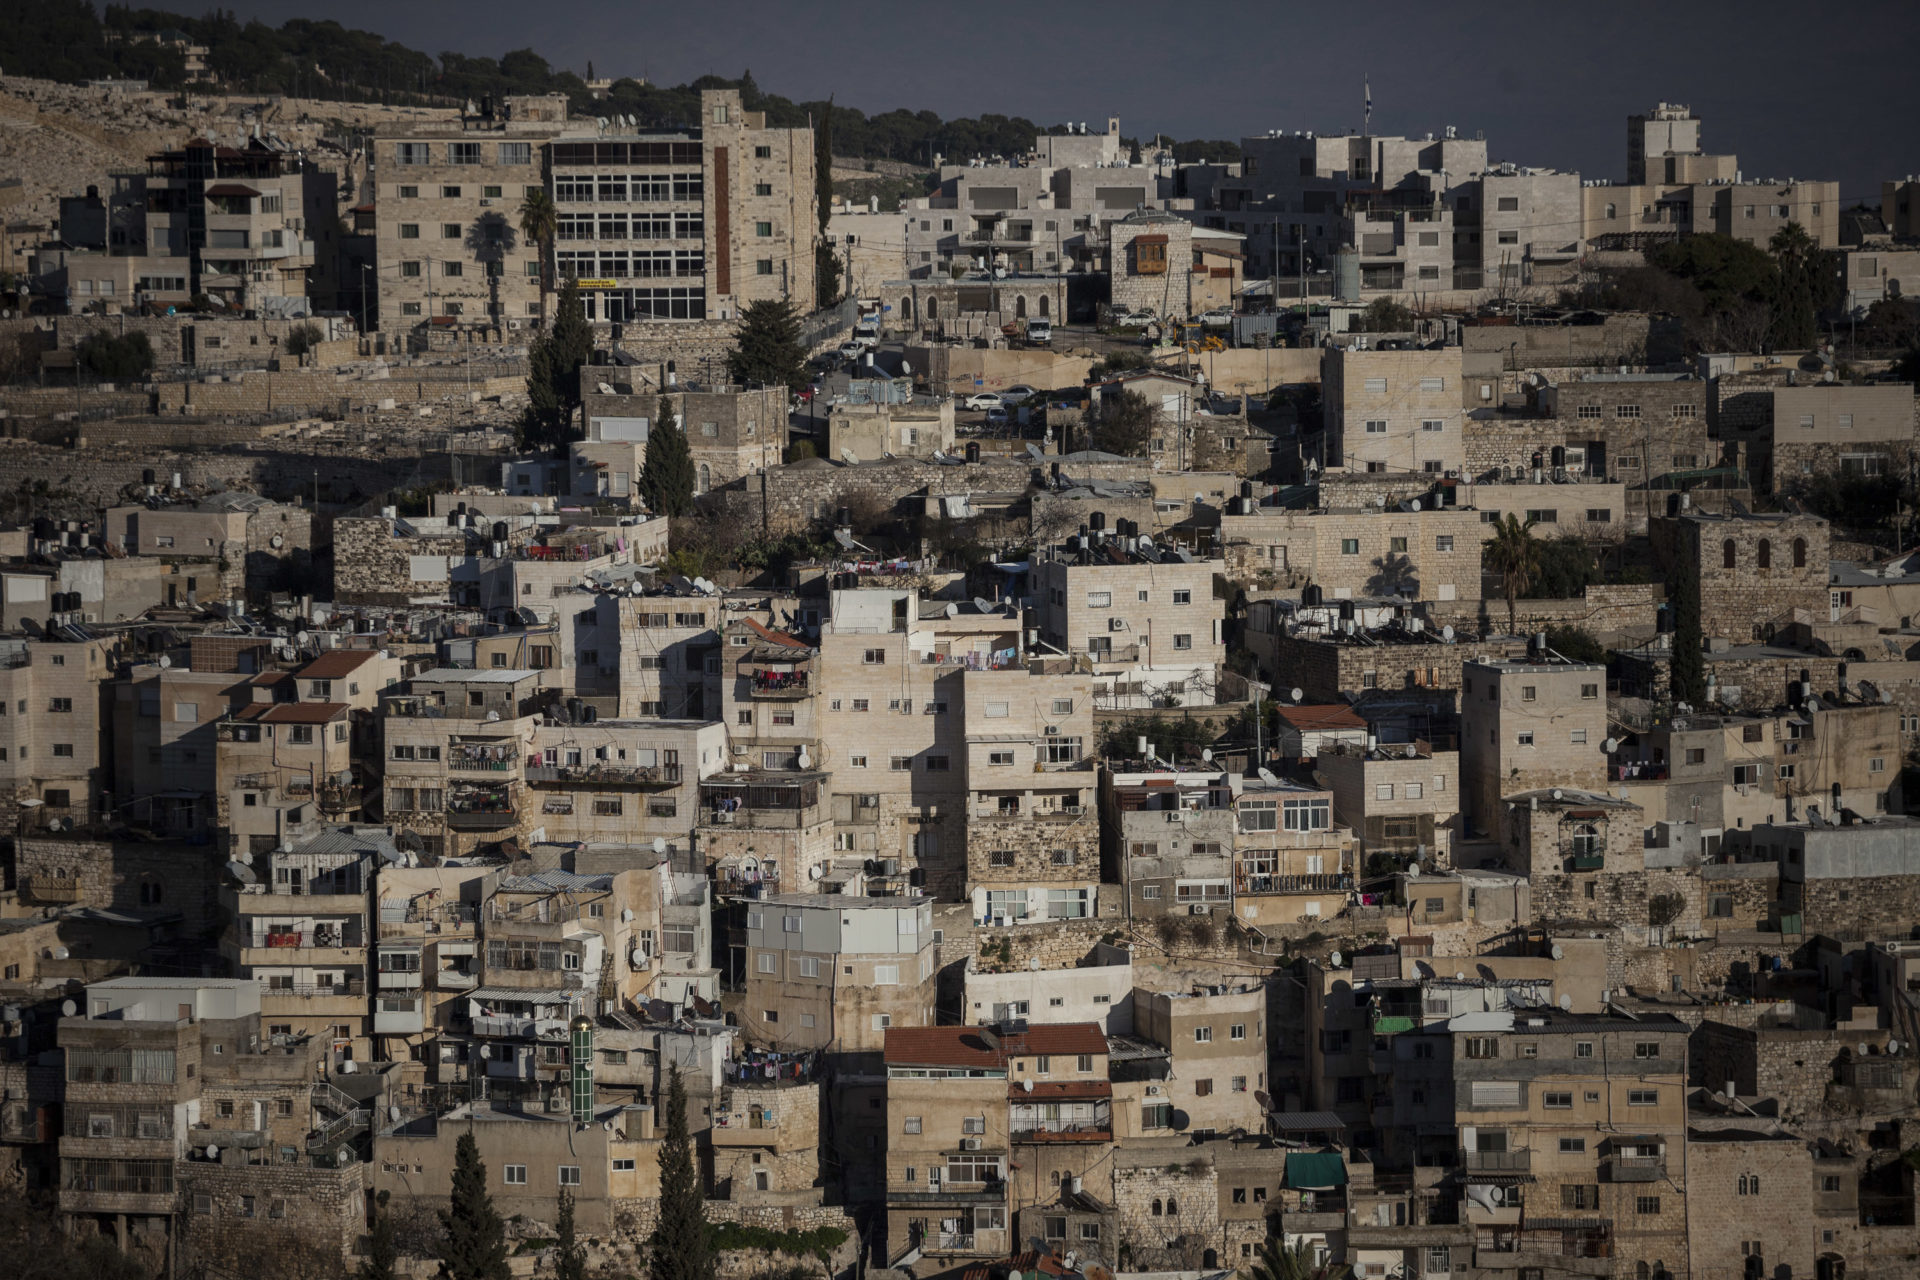 The neighbourhood of Silwan seen from the Old City's ramparts.